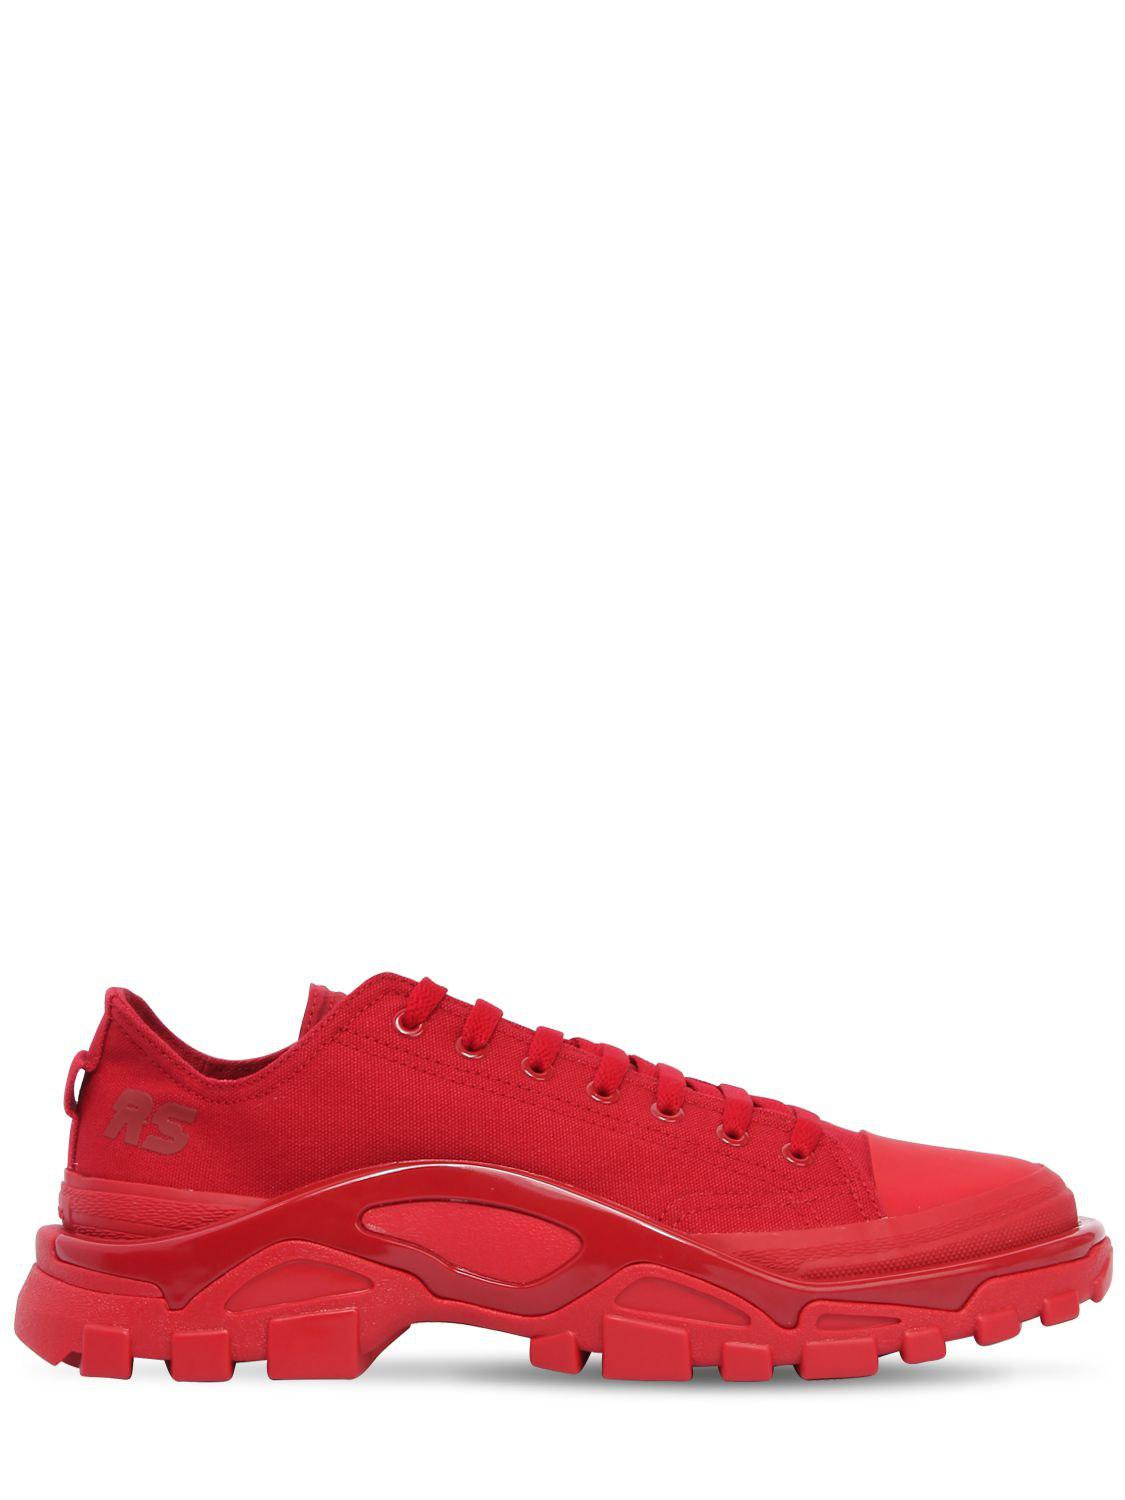 Lyst - adidas By Raf Simons Rs Detroit Runner Sneakers in Red for ... 0765bfe3b